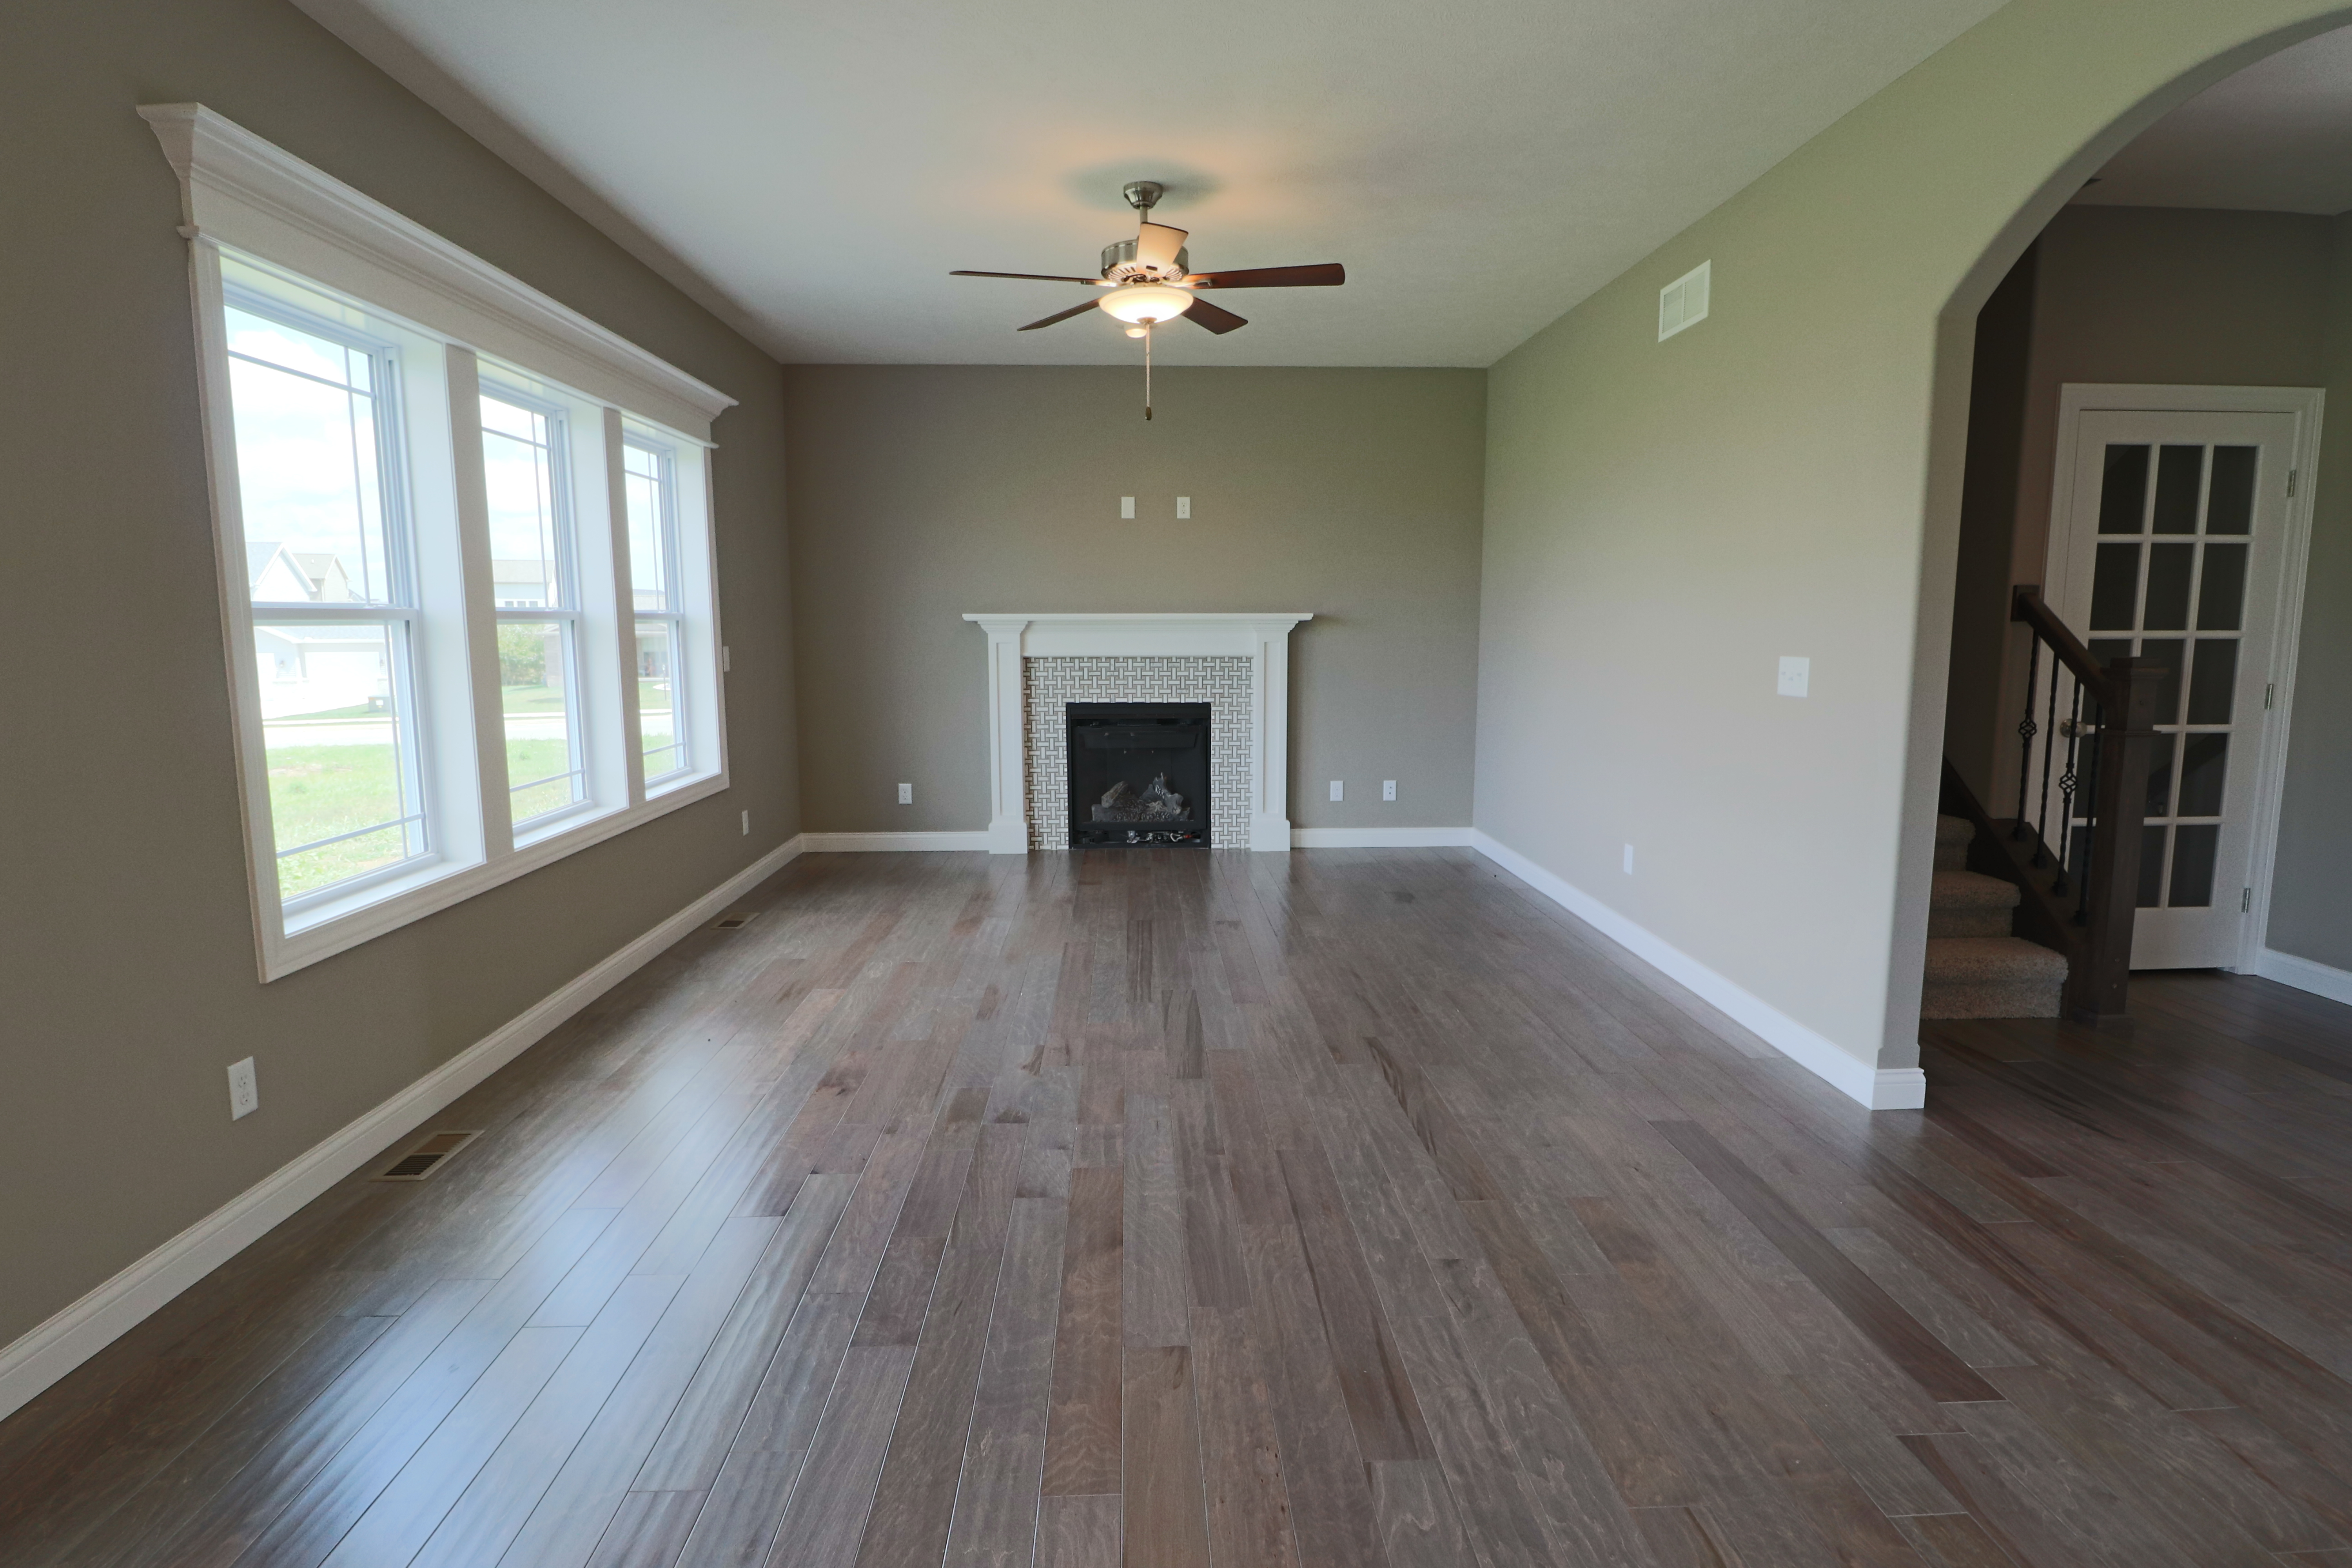 House for sale in the Dunlap peoria area fireplace